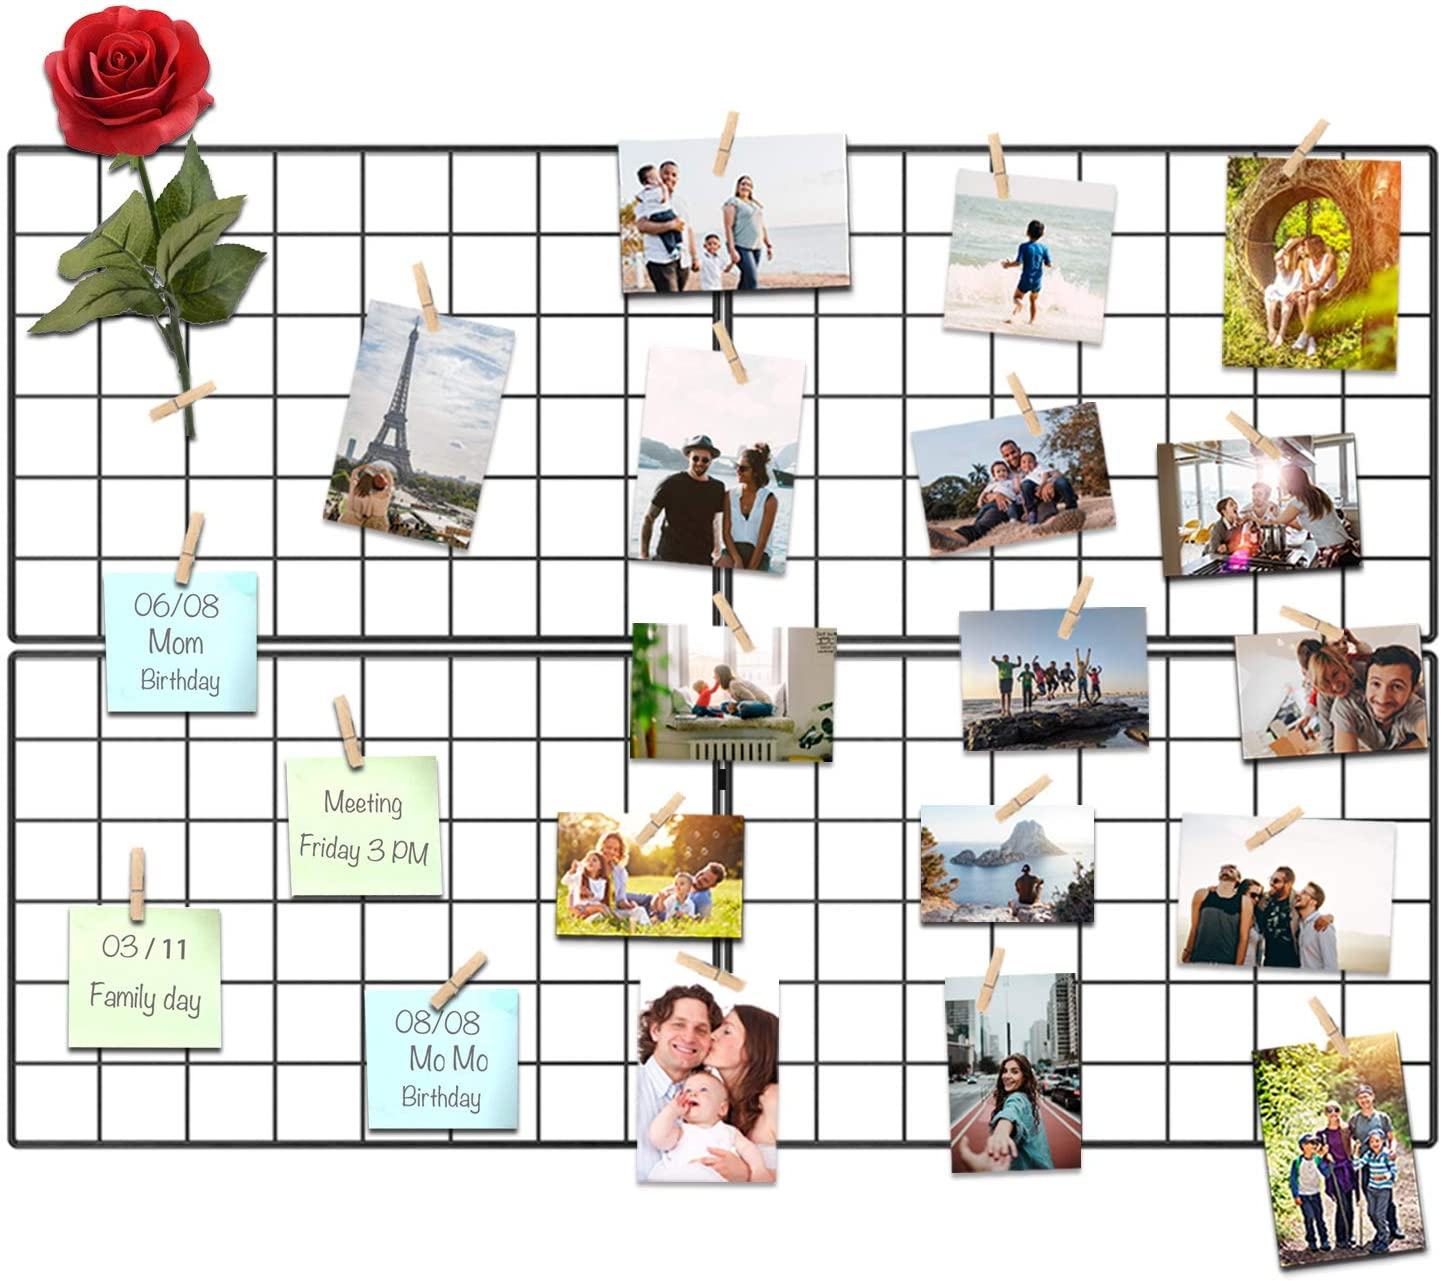 Kakivan Wire Wall Grid Panel for Photo Display, DIY Iron Picture Frames Collage for Hanging Wall Decor, Foldable Multi Pictures Organizer with 12 Clips, 28'' X 22'' Inch. (2 Pack)